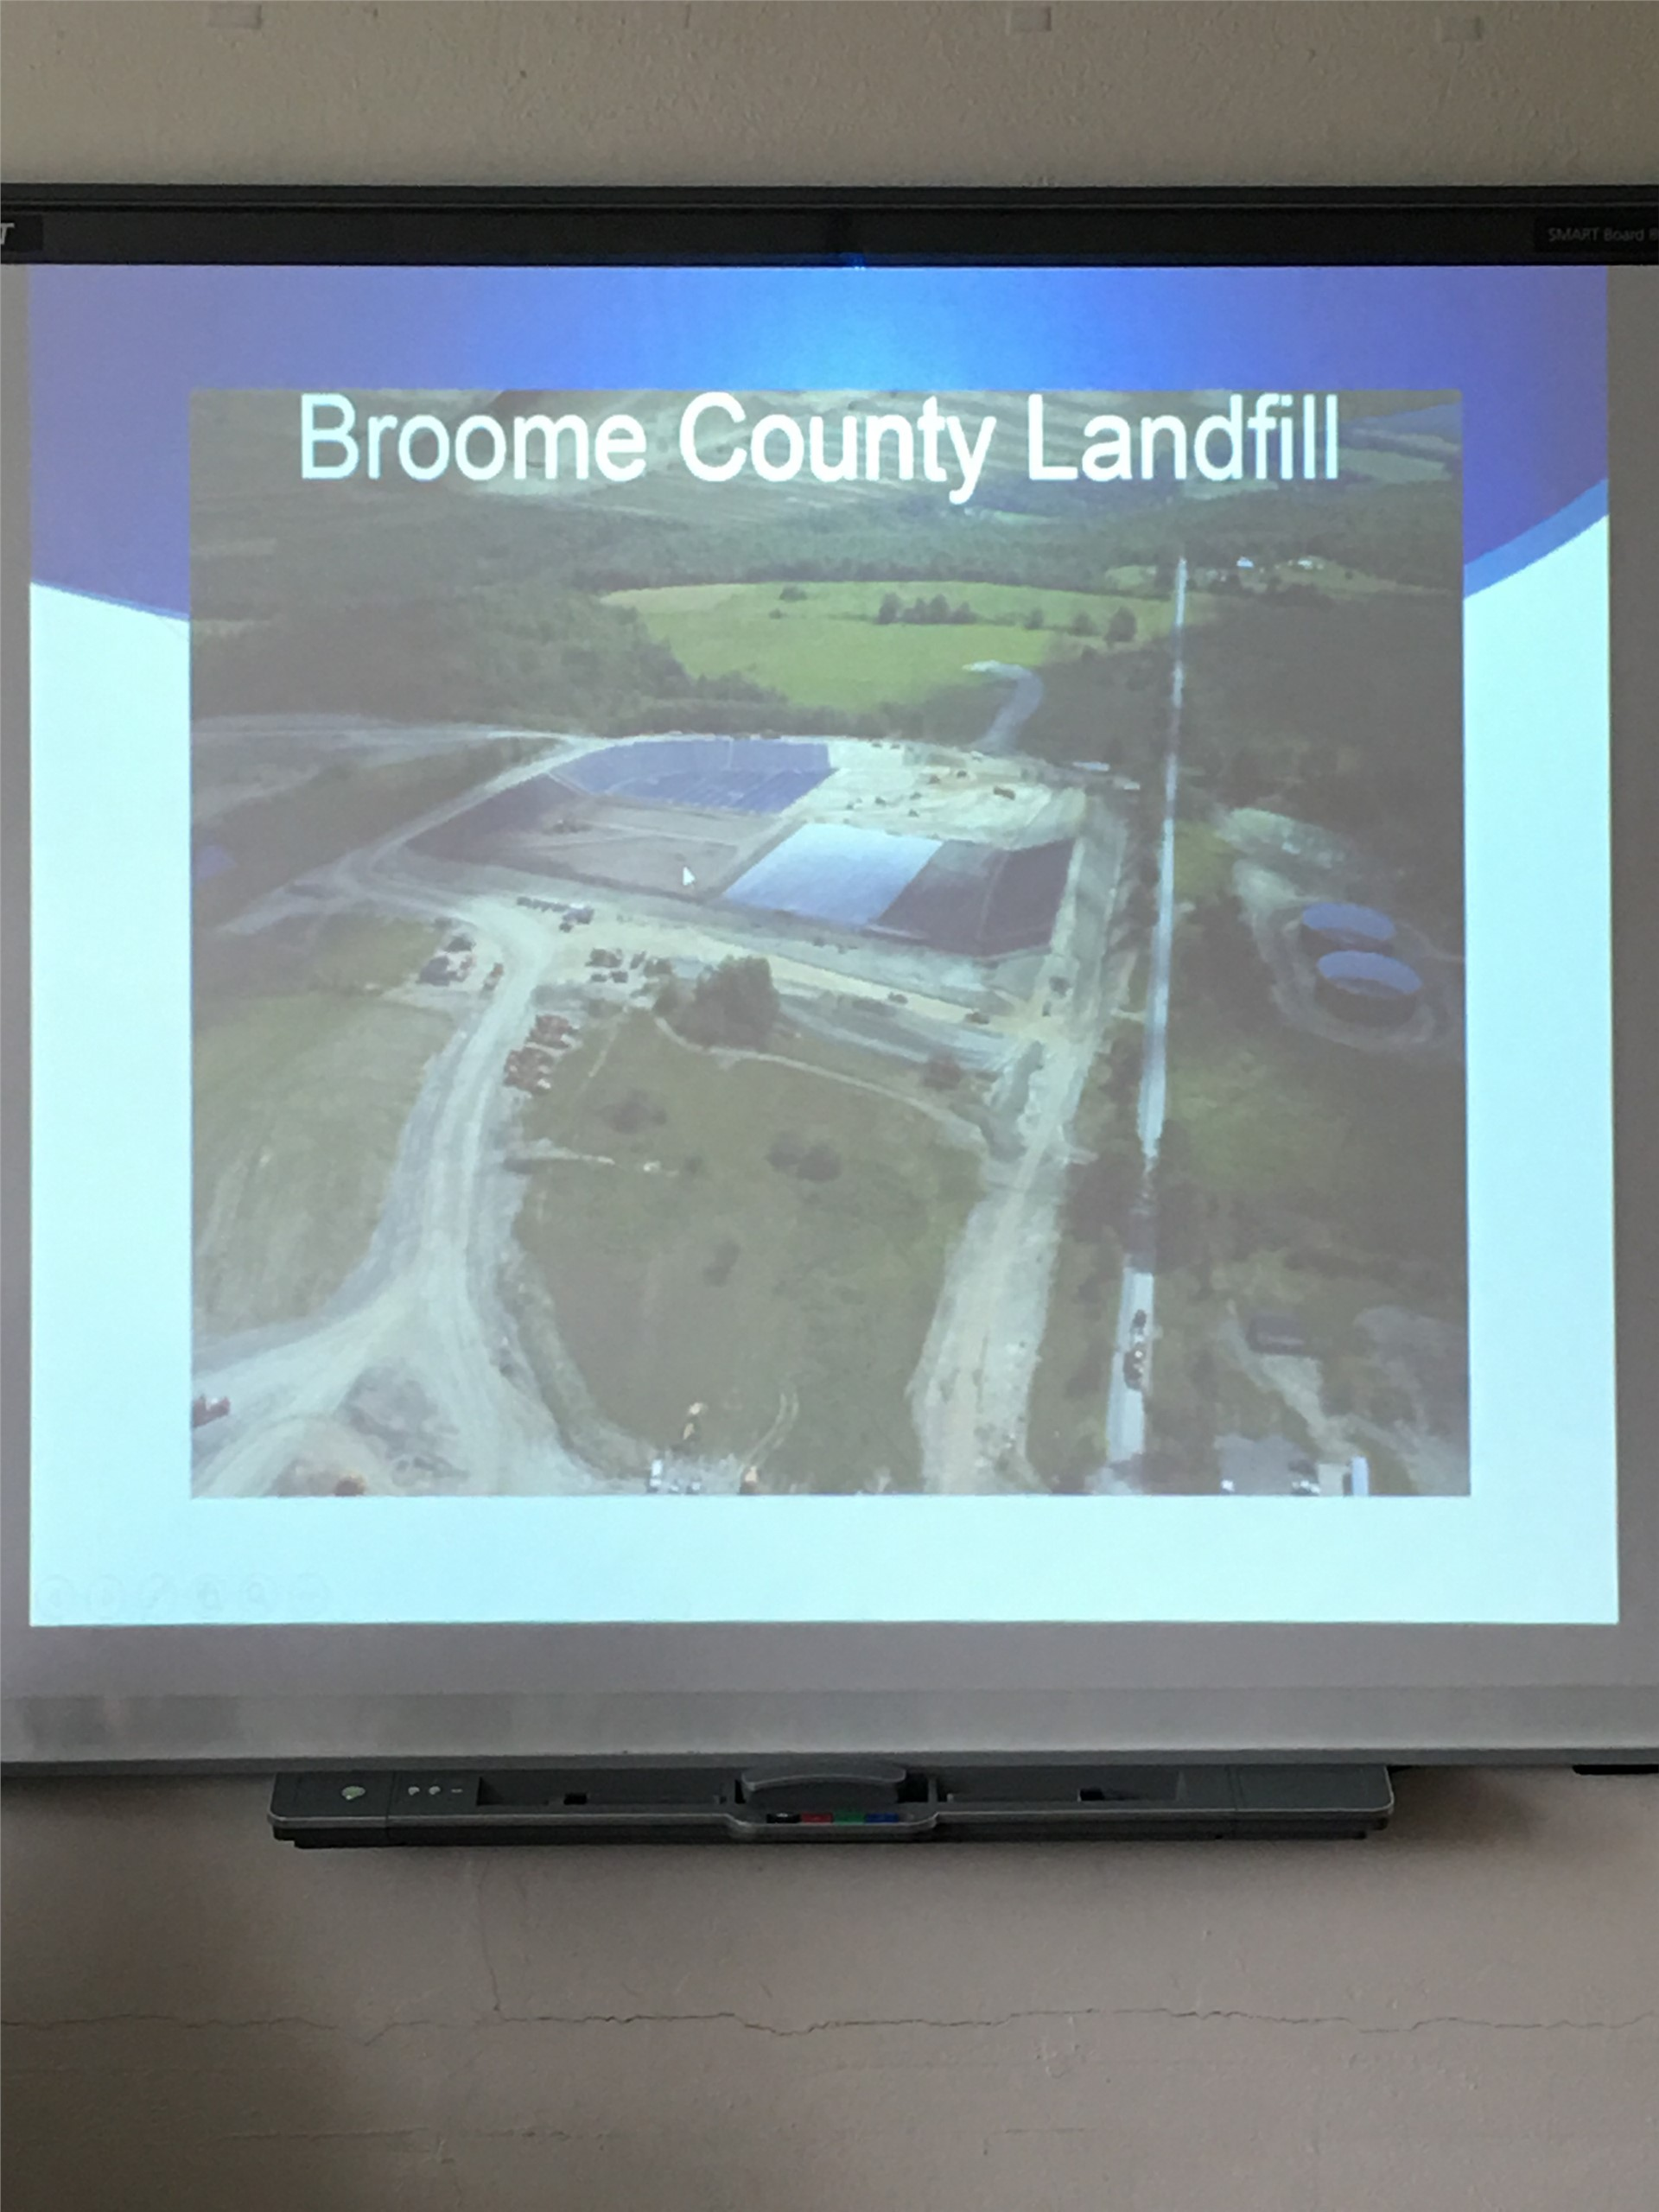 powerpoint about broome county landfill 1